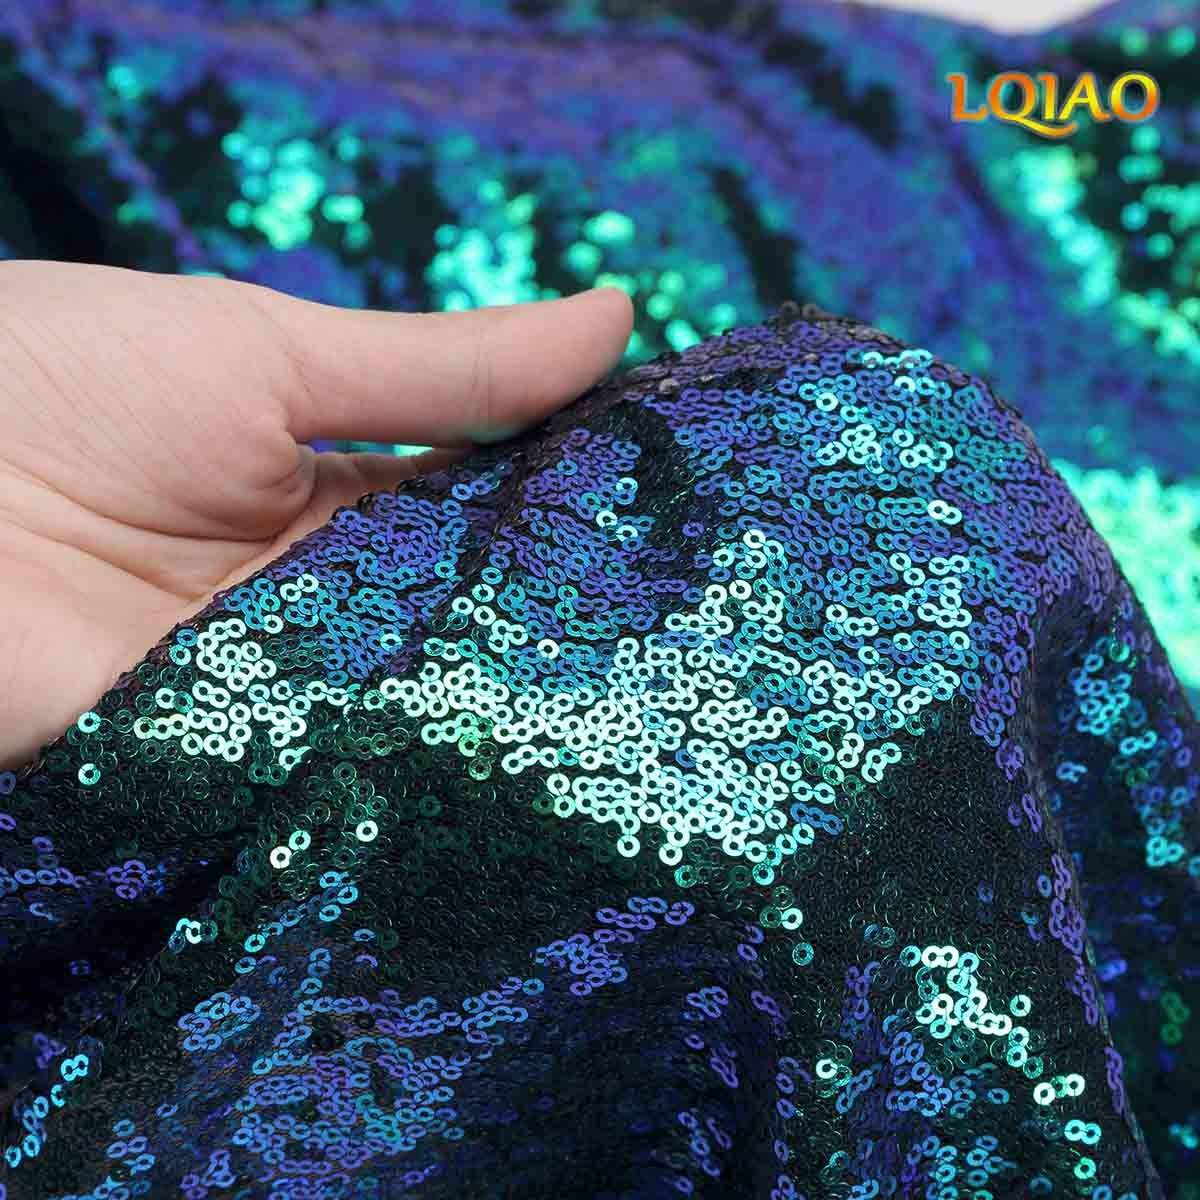 LQIAO W50xH84in Fluorescence Green Sequin Curtain Backdrop Sequin Photo Backdrop Ceremony Background Shimmer Sequin Backdrop Fabric/Curtain For Wedding/Home DIY-one pc, Hook 50x84in(125x220cm)) by LQIAO (Image #4)